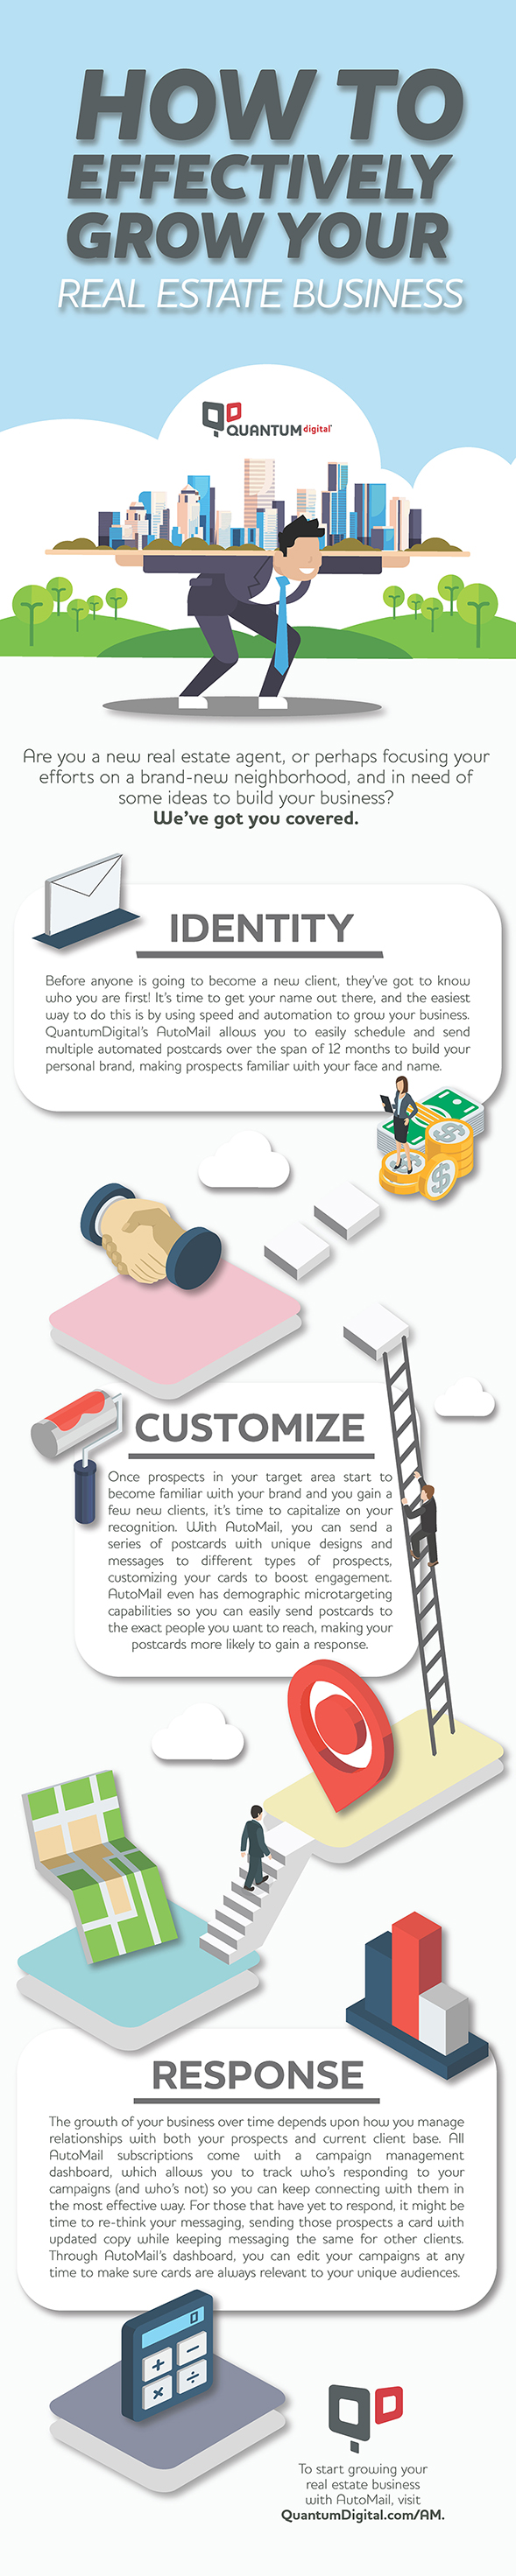 how to effectively grow your real estate business infographic